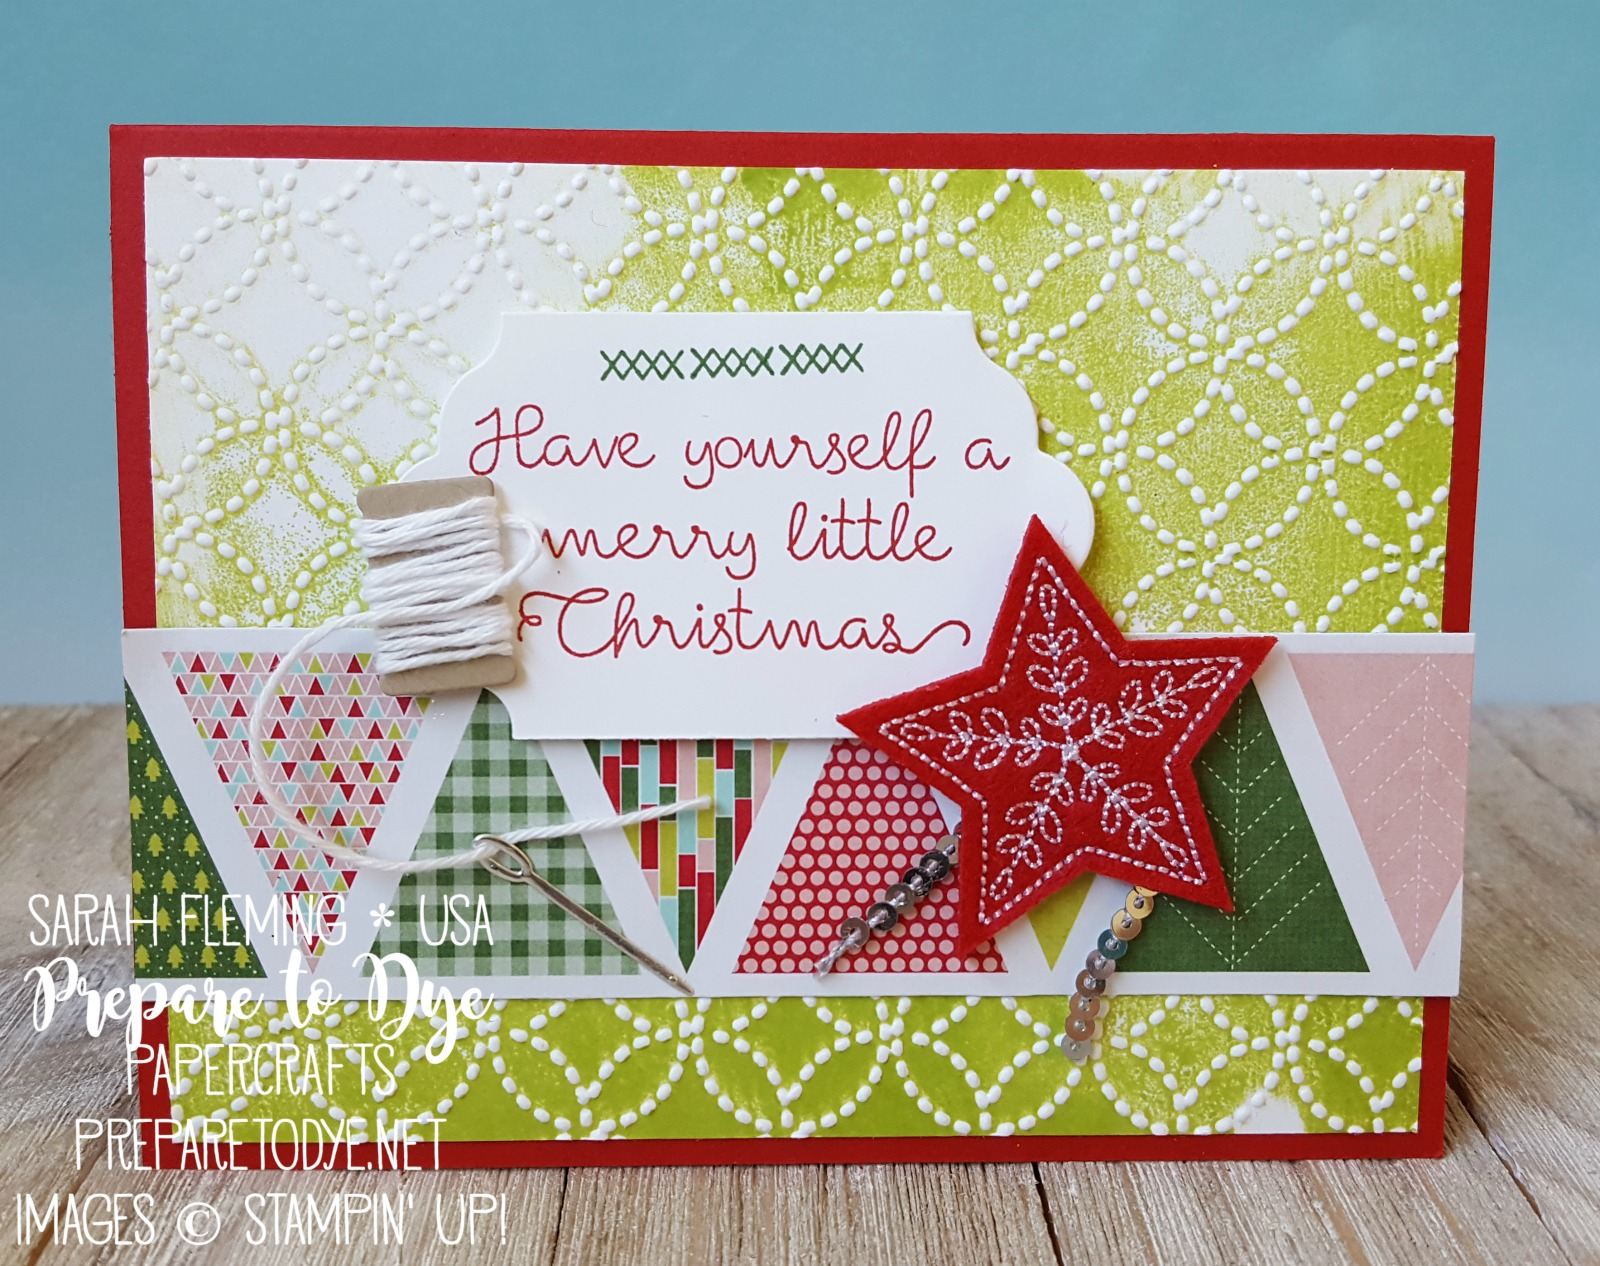 Stampin' Up! Christmas Quilt bundle with Quilt Builder Framelits, Quilt Top embossing folder, Quilted Christmas designer series paper, Stitched Felt Embellishments - inked embossing folder video tutorial - Sarah Fleming - Prepare to Dye Papercrafts